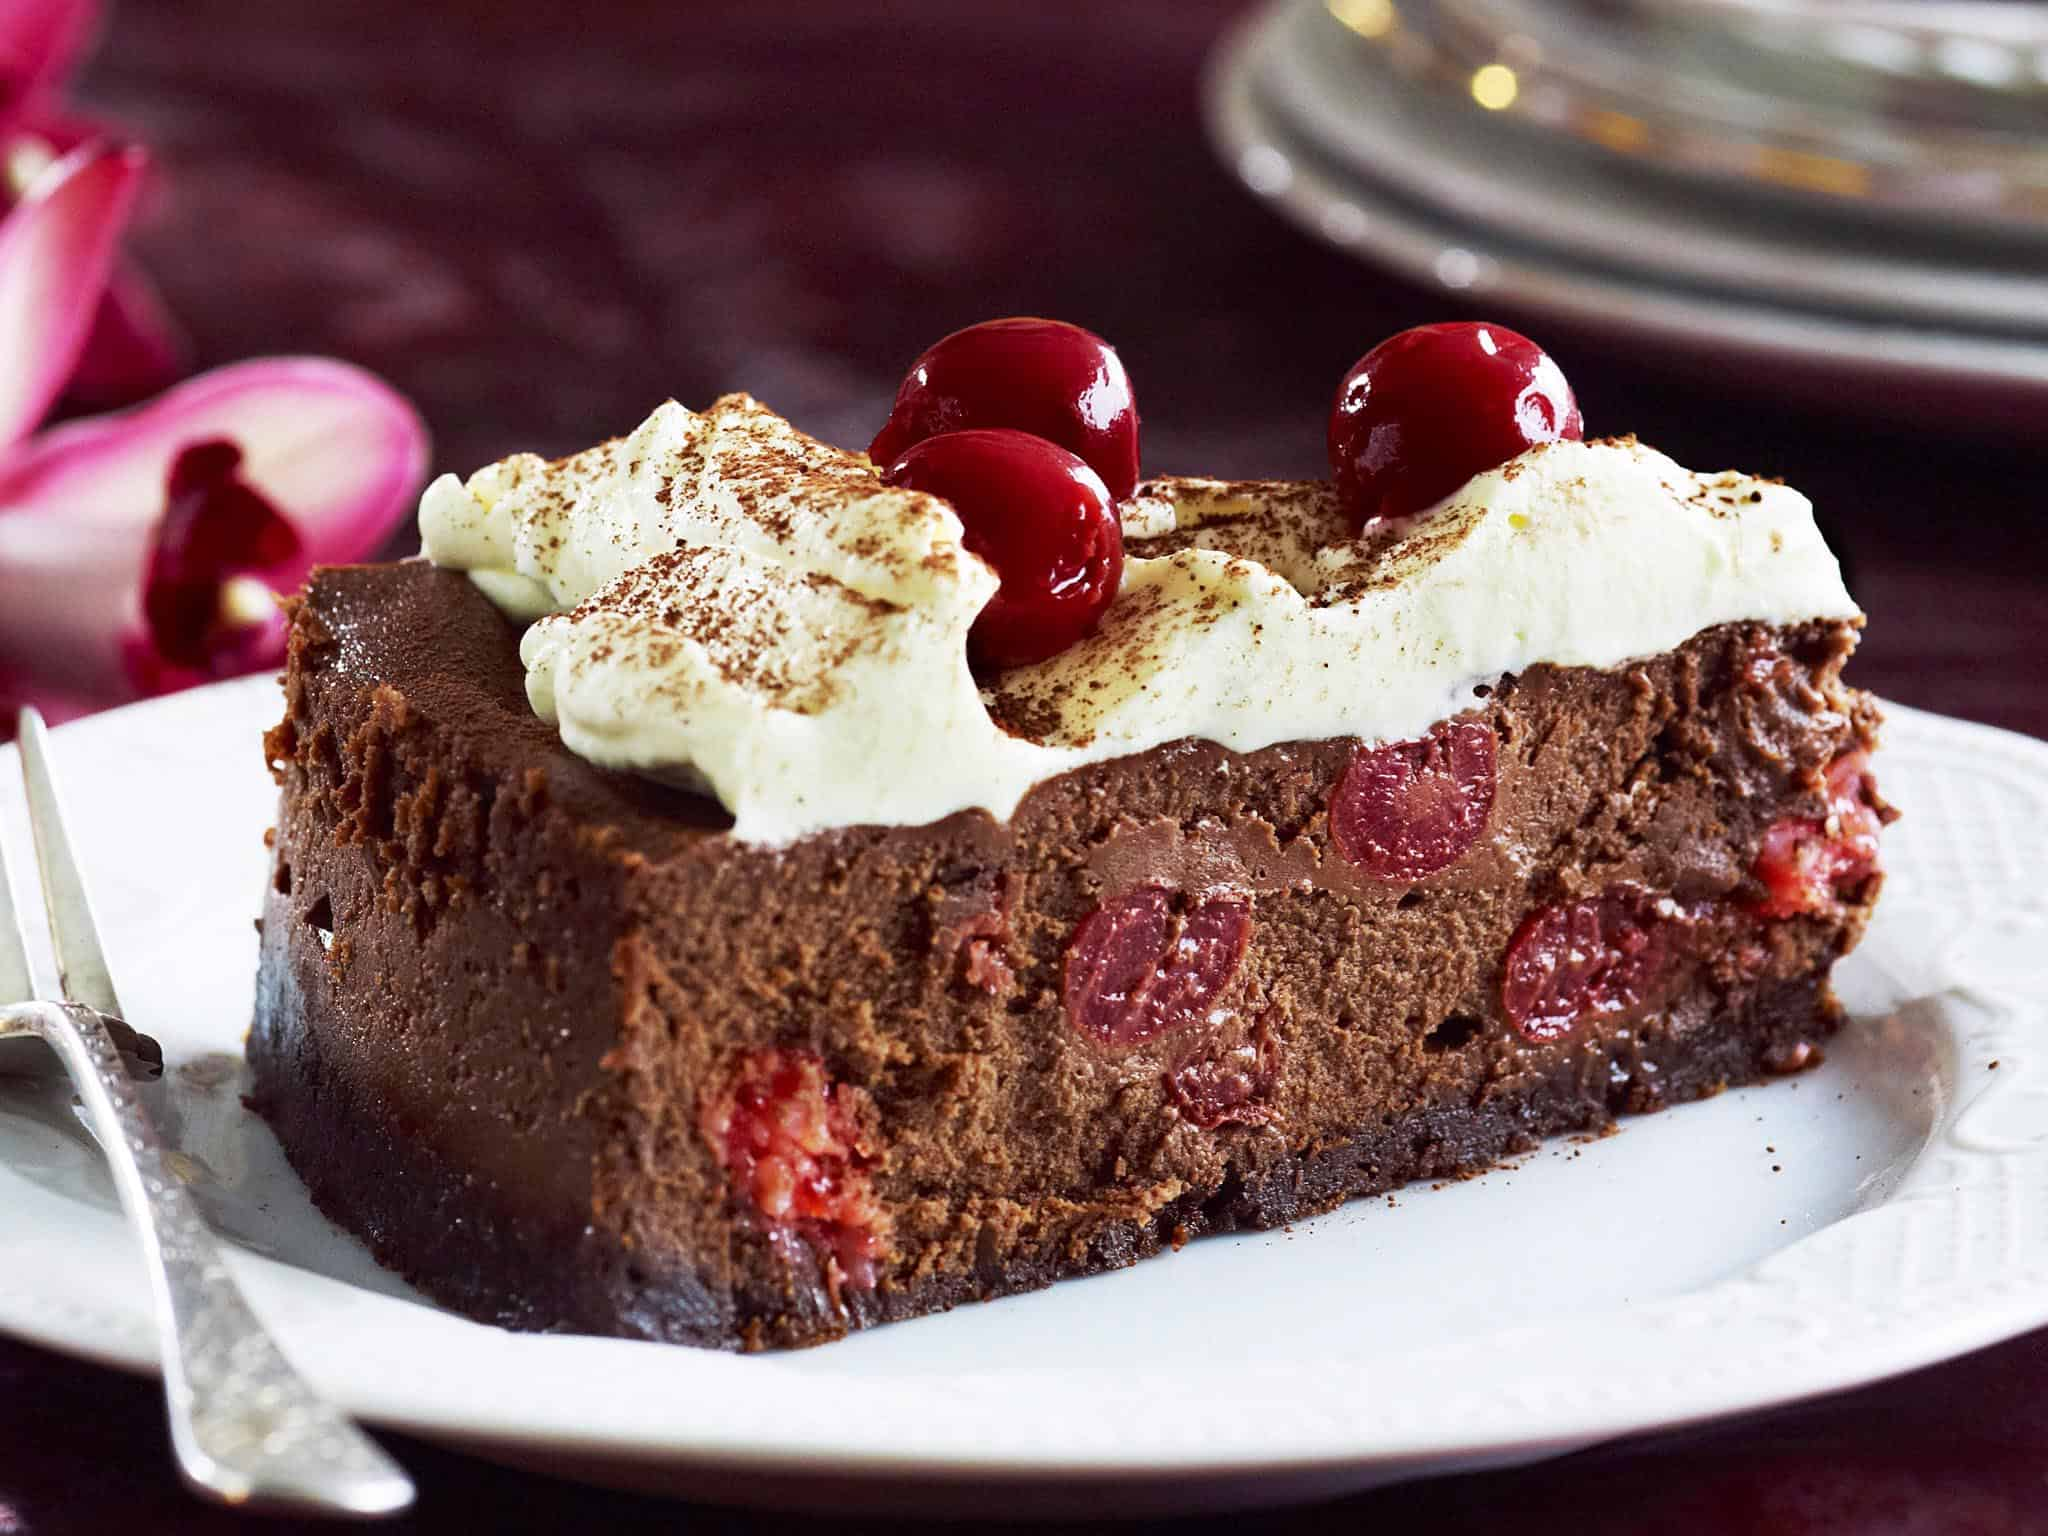 Chocolate fantasy cherry ripe choc cheesecake